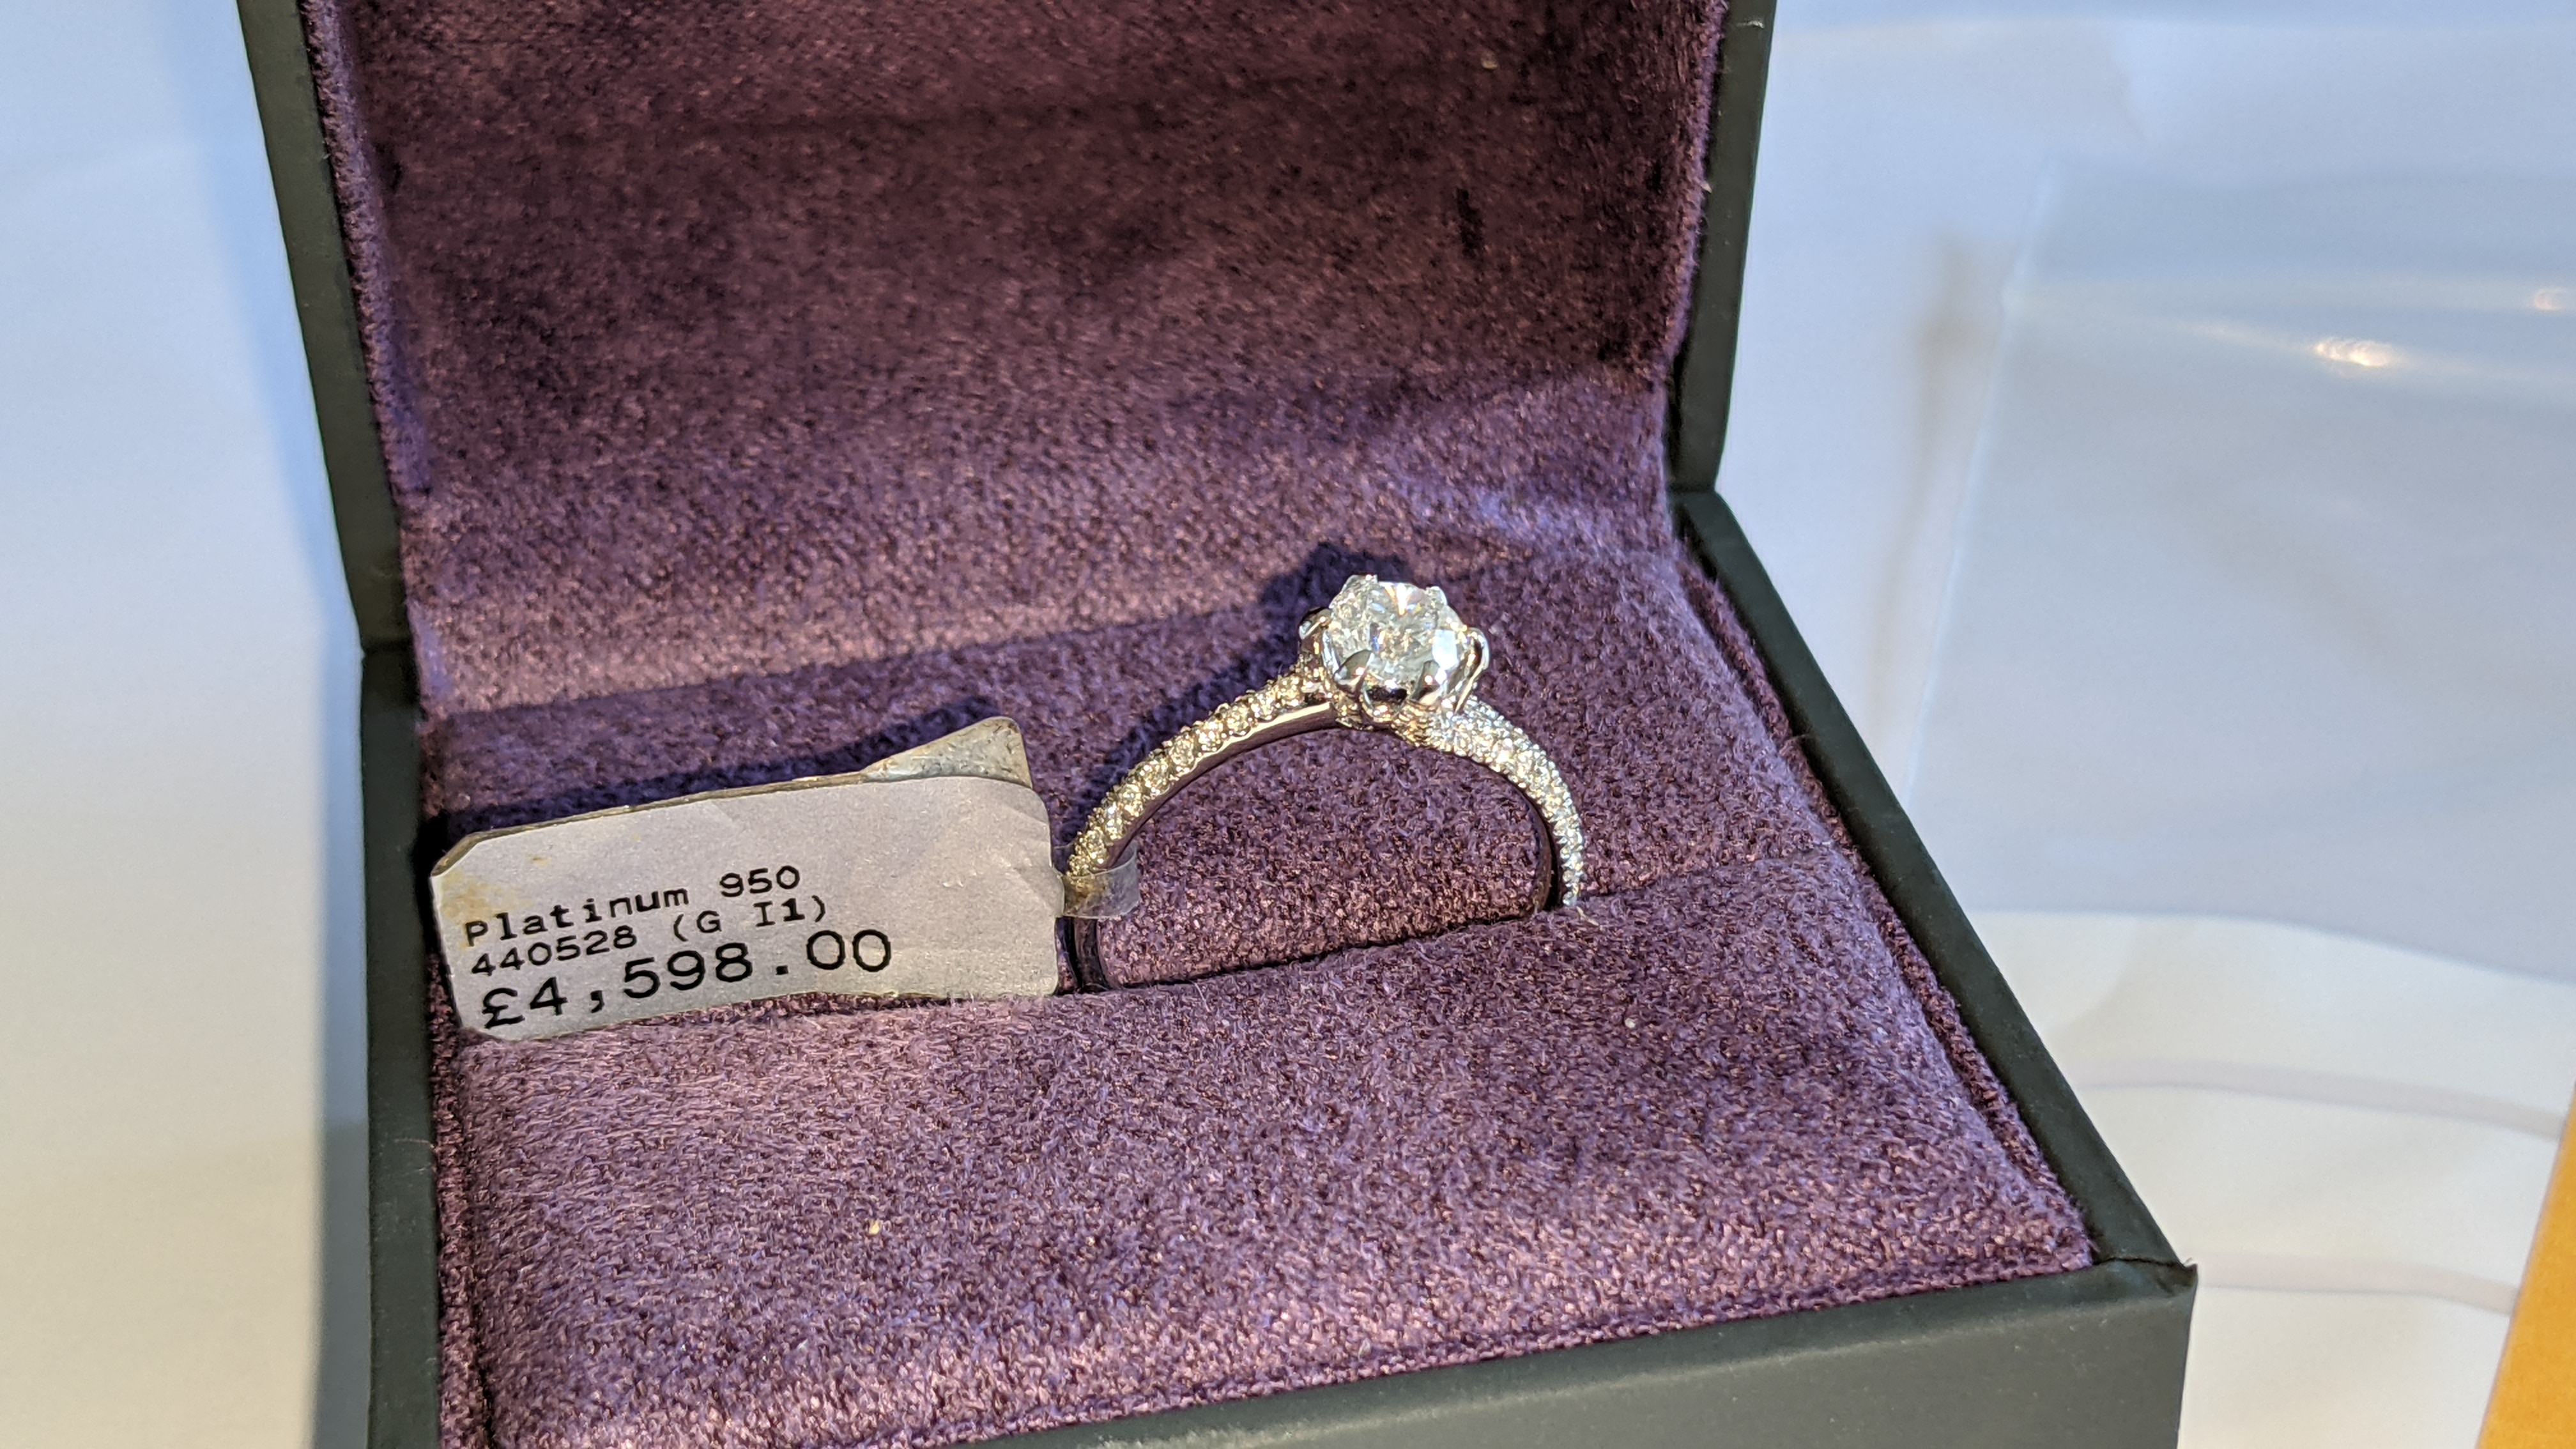 Platinum 950 diamond ring with 0.55ct central stone & 0.348ct of smaller stones on the shoulders. RR - Image 2 of 16